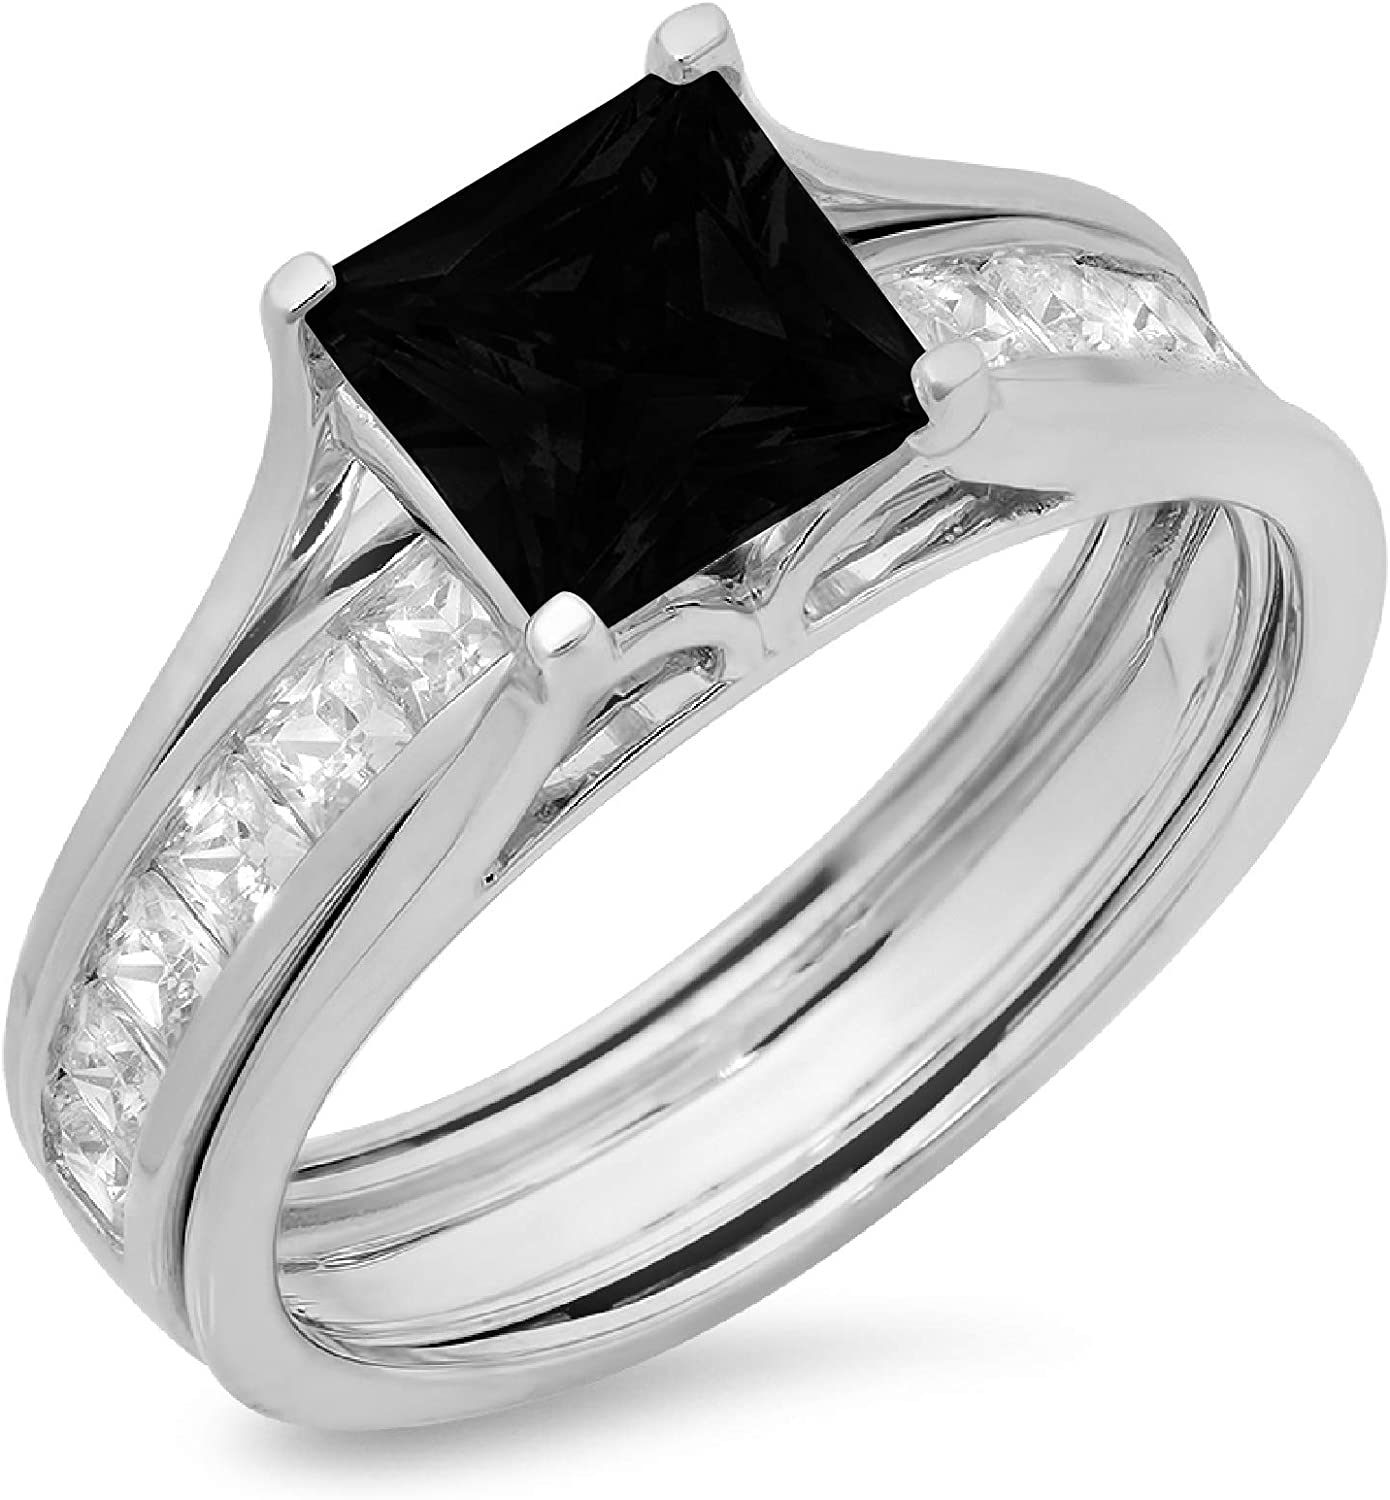 3.34ct Princess Cut Pave Solitaire with Accent VVS1 Ideal Flawless Genuine Natural Black Onyx Engagement Promise Designer Anniversary Wedding Bridal Ring band set Sliding 14k White Gold